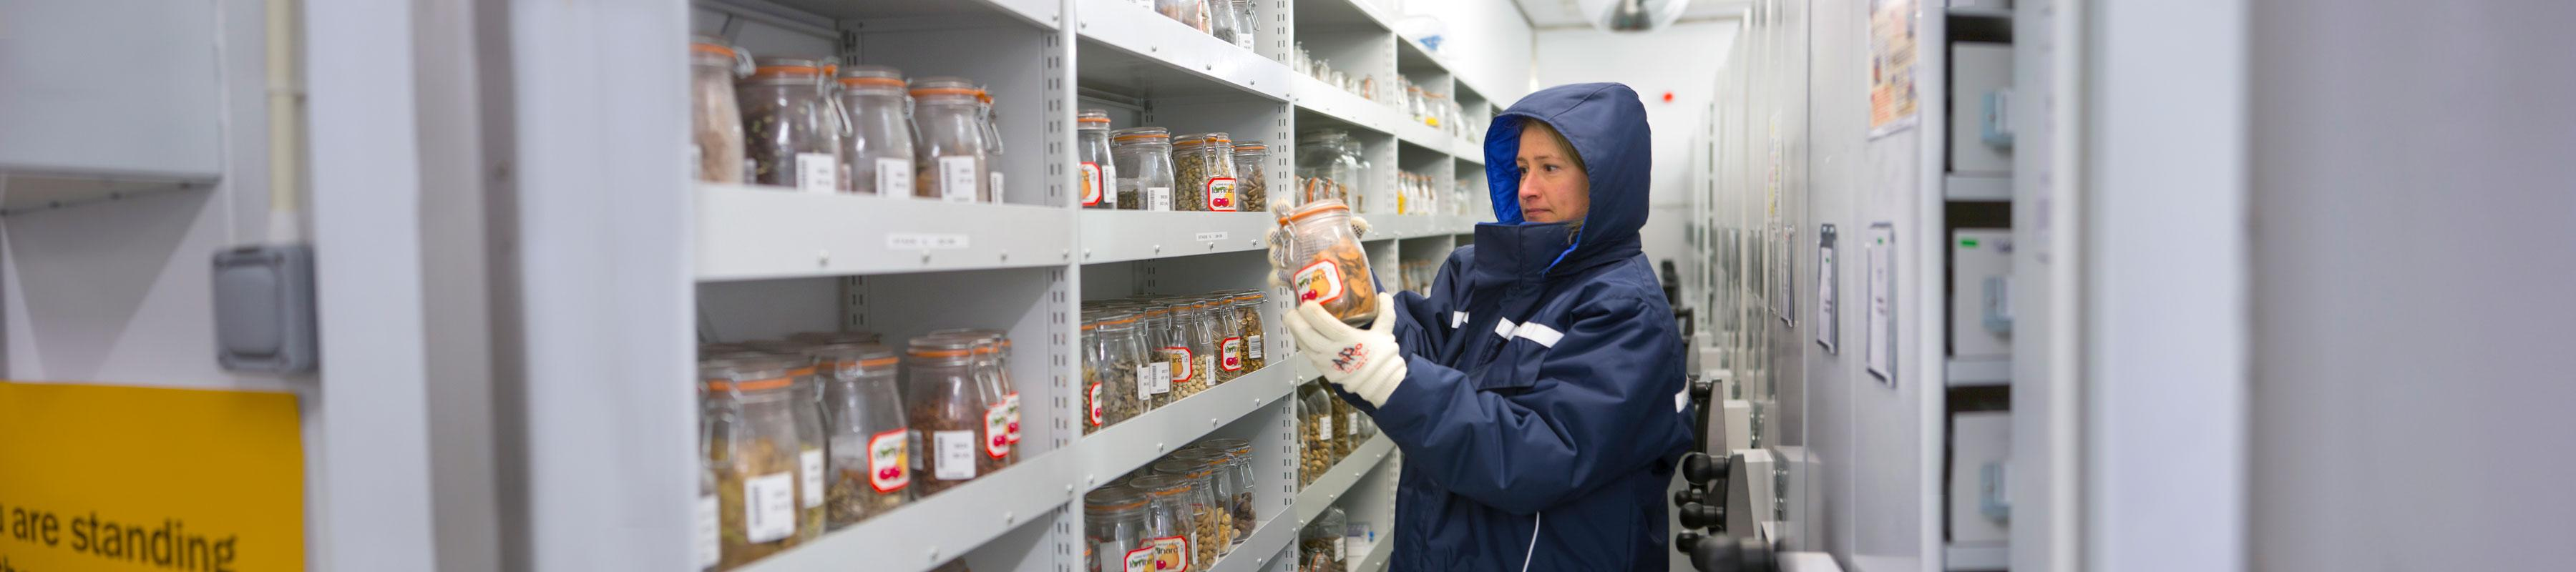 Researcher wearing large protective coat, holding jar of seeds, in the vault of the Millennium Seed Bank